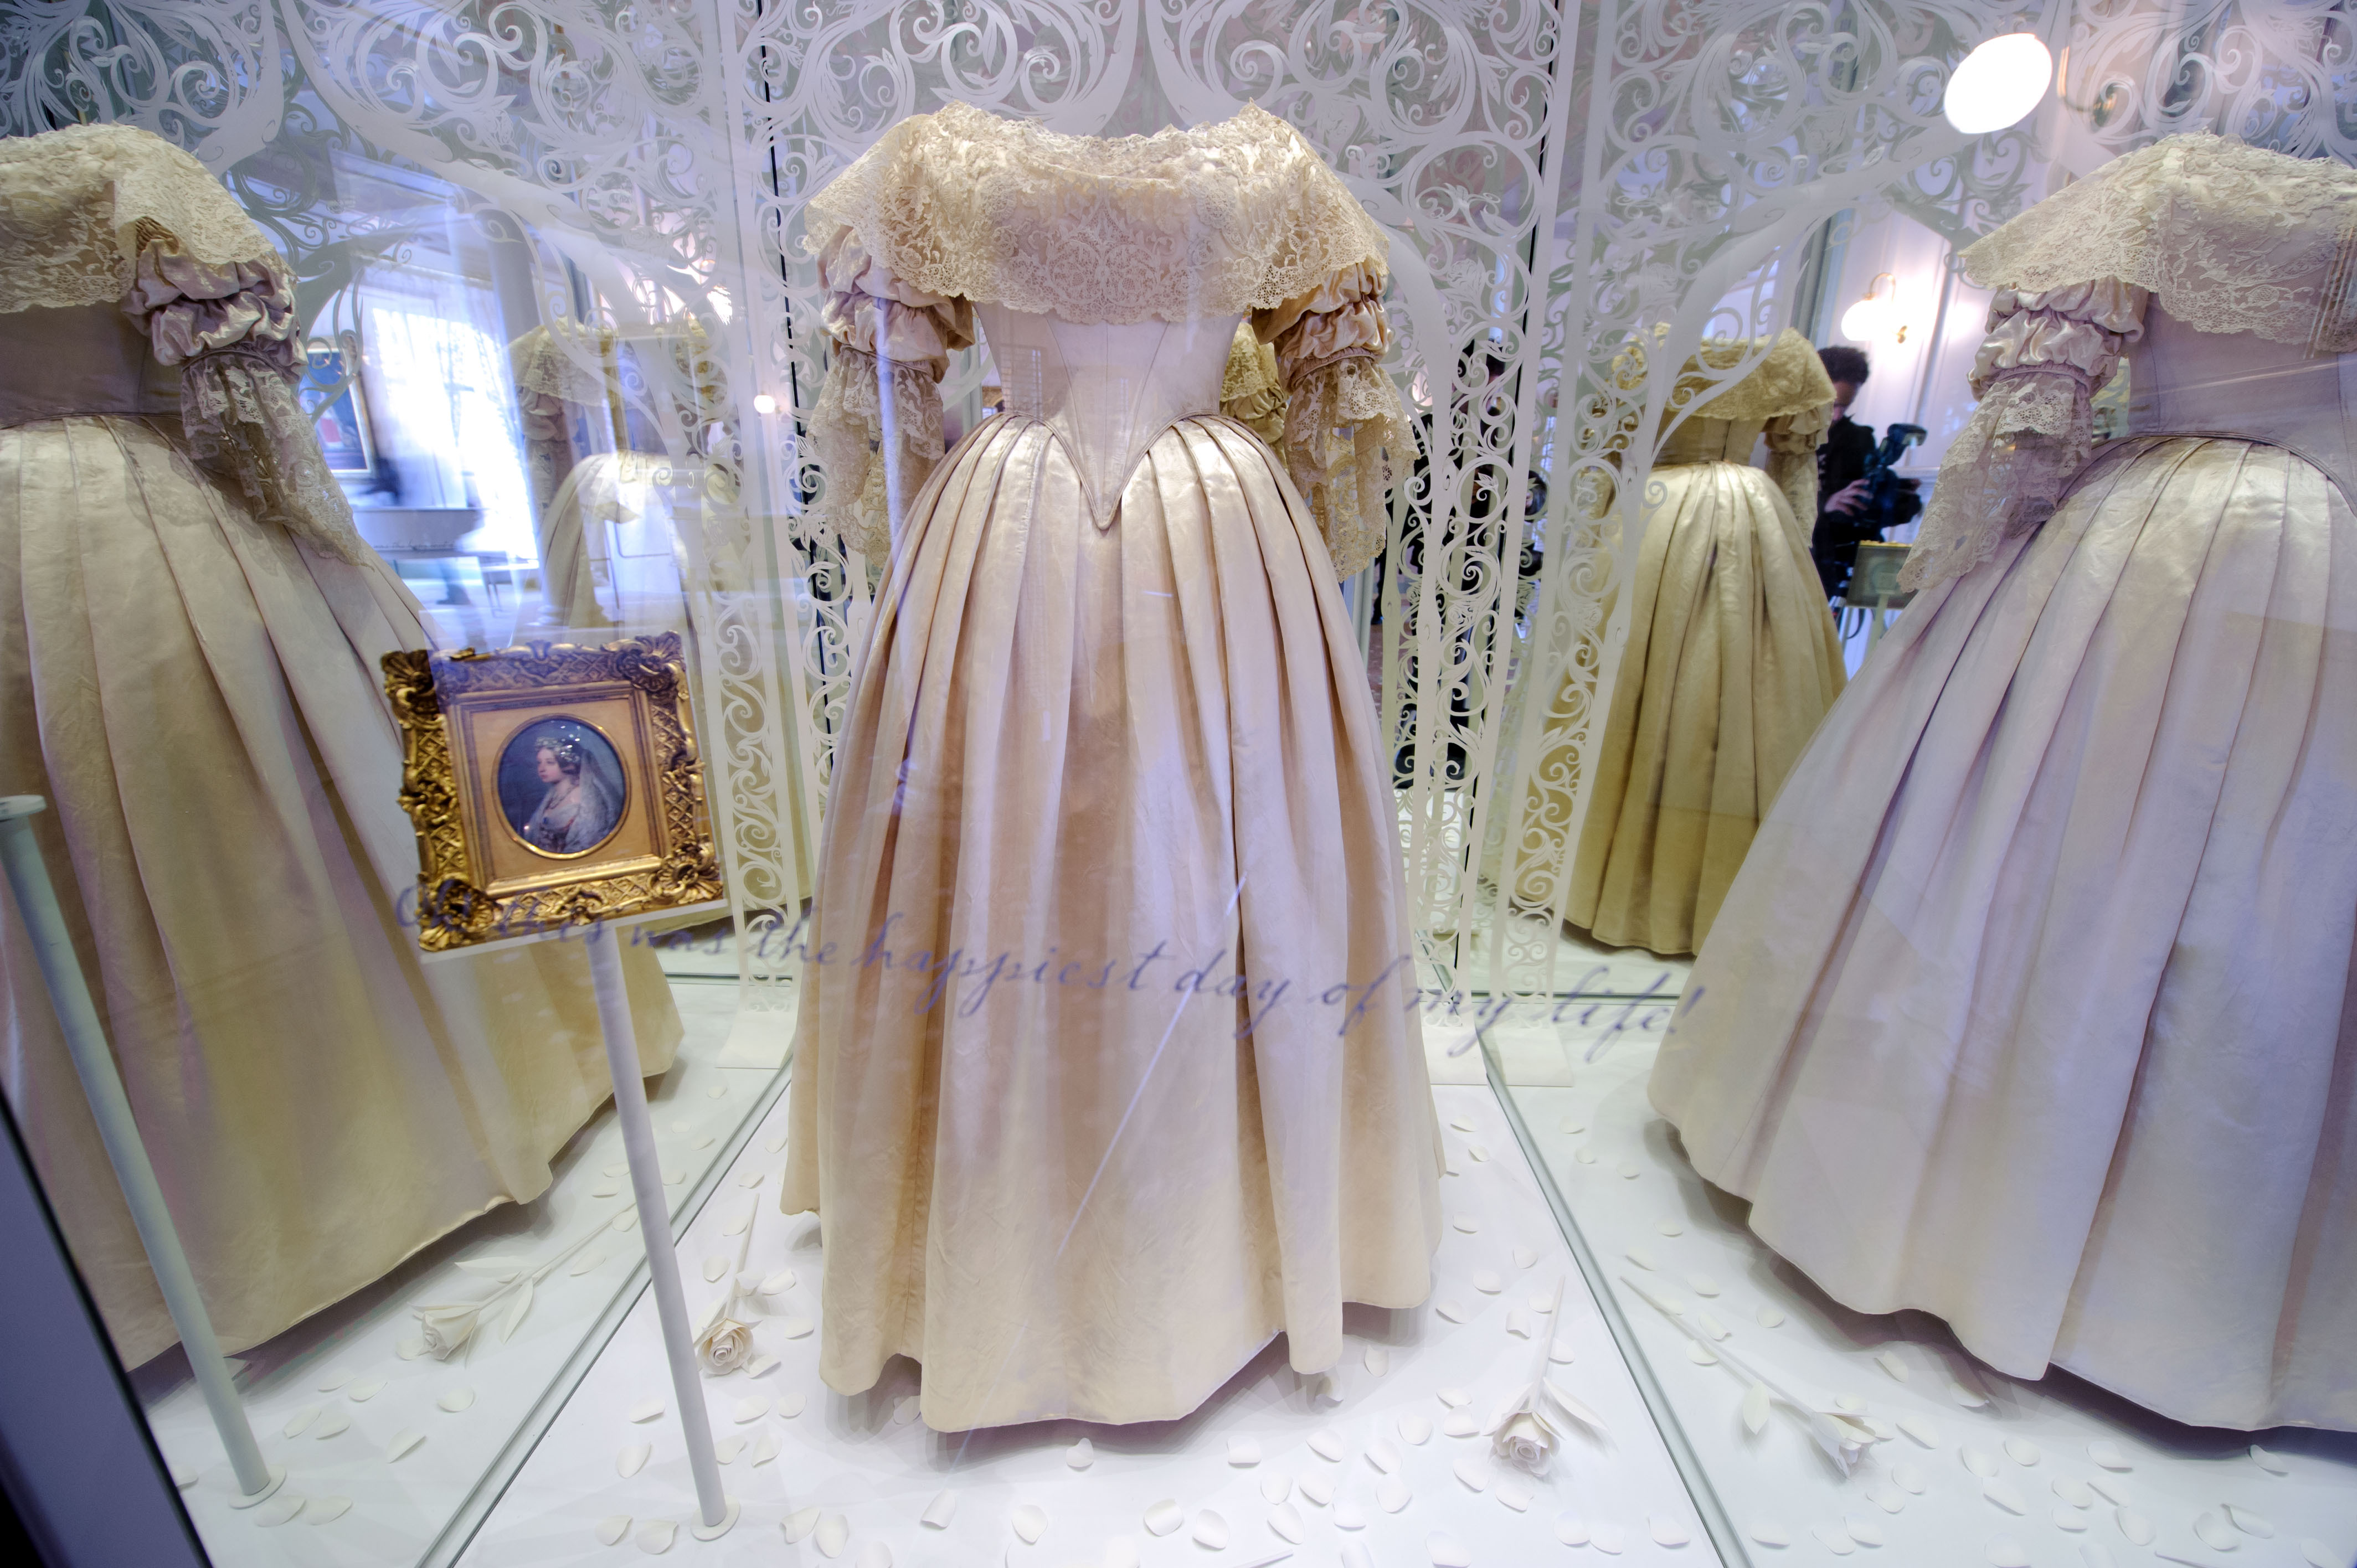 7 Of The Most Beautiful Royal Wedding Dresses Ever